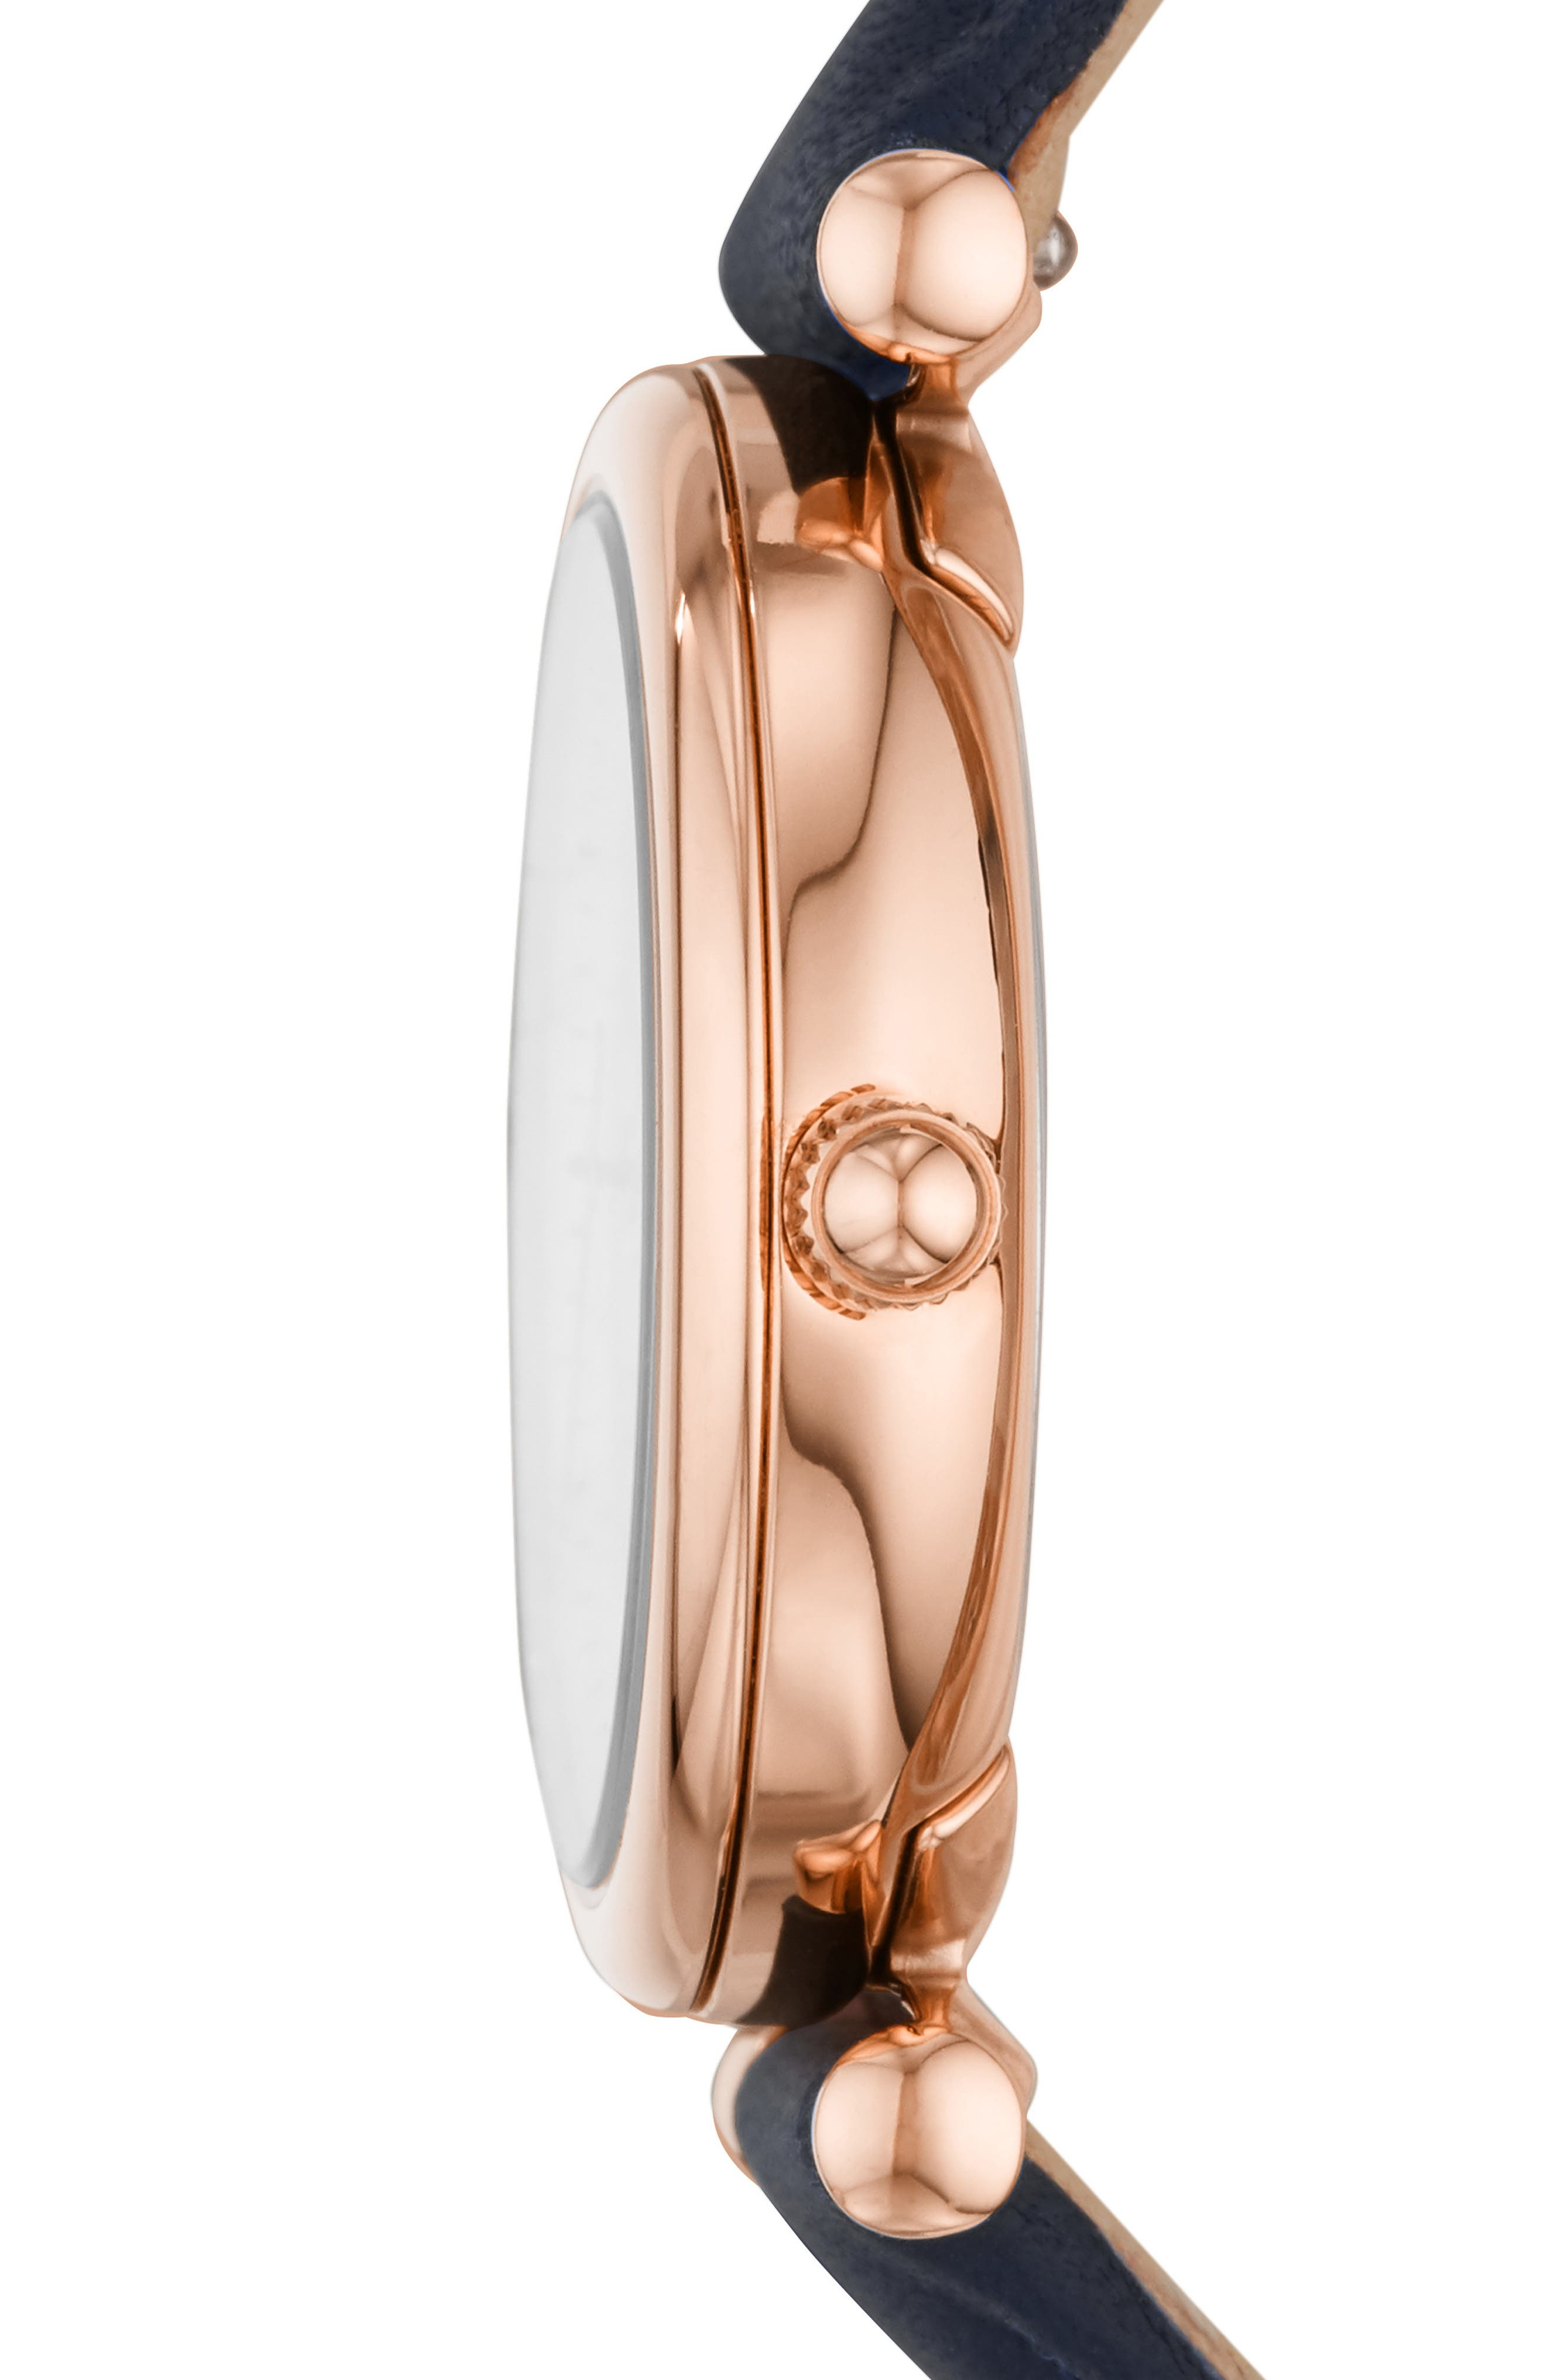 FOSSIL, Mini Carlie Star Leather Strap Watch, 28mm, Alternate thumbnail 2, color, NAVY/ WHITE MOP/ ROSE GOLD